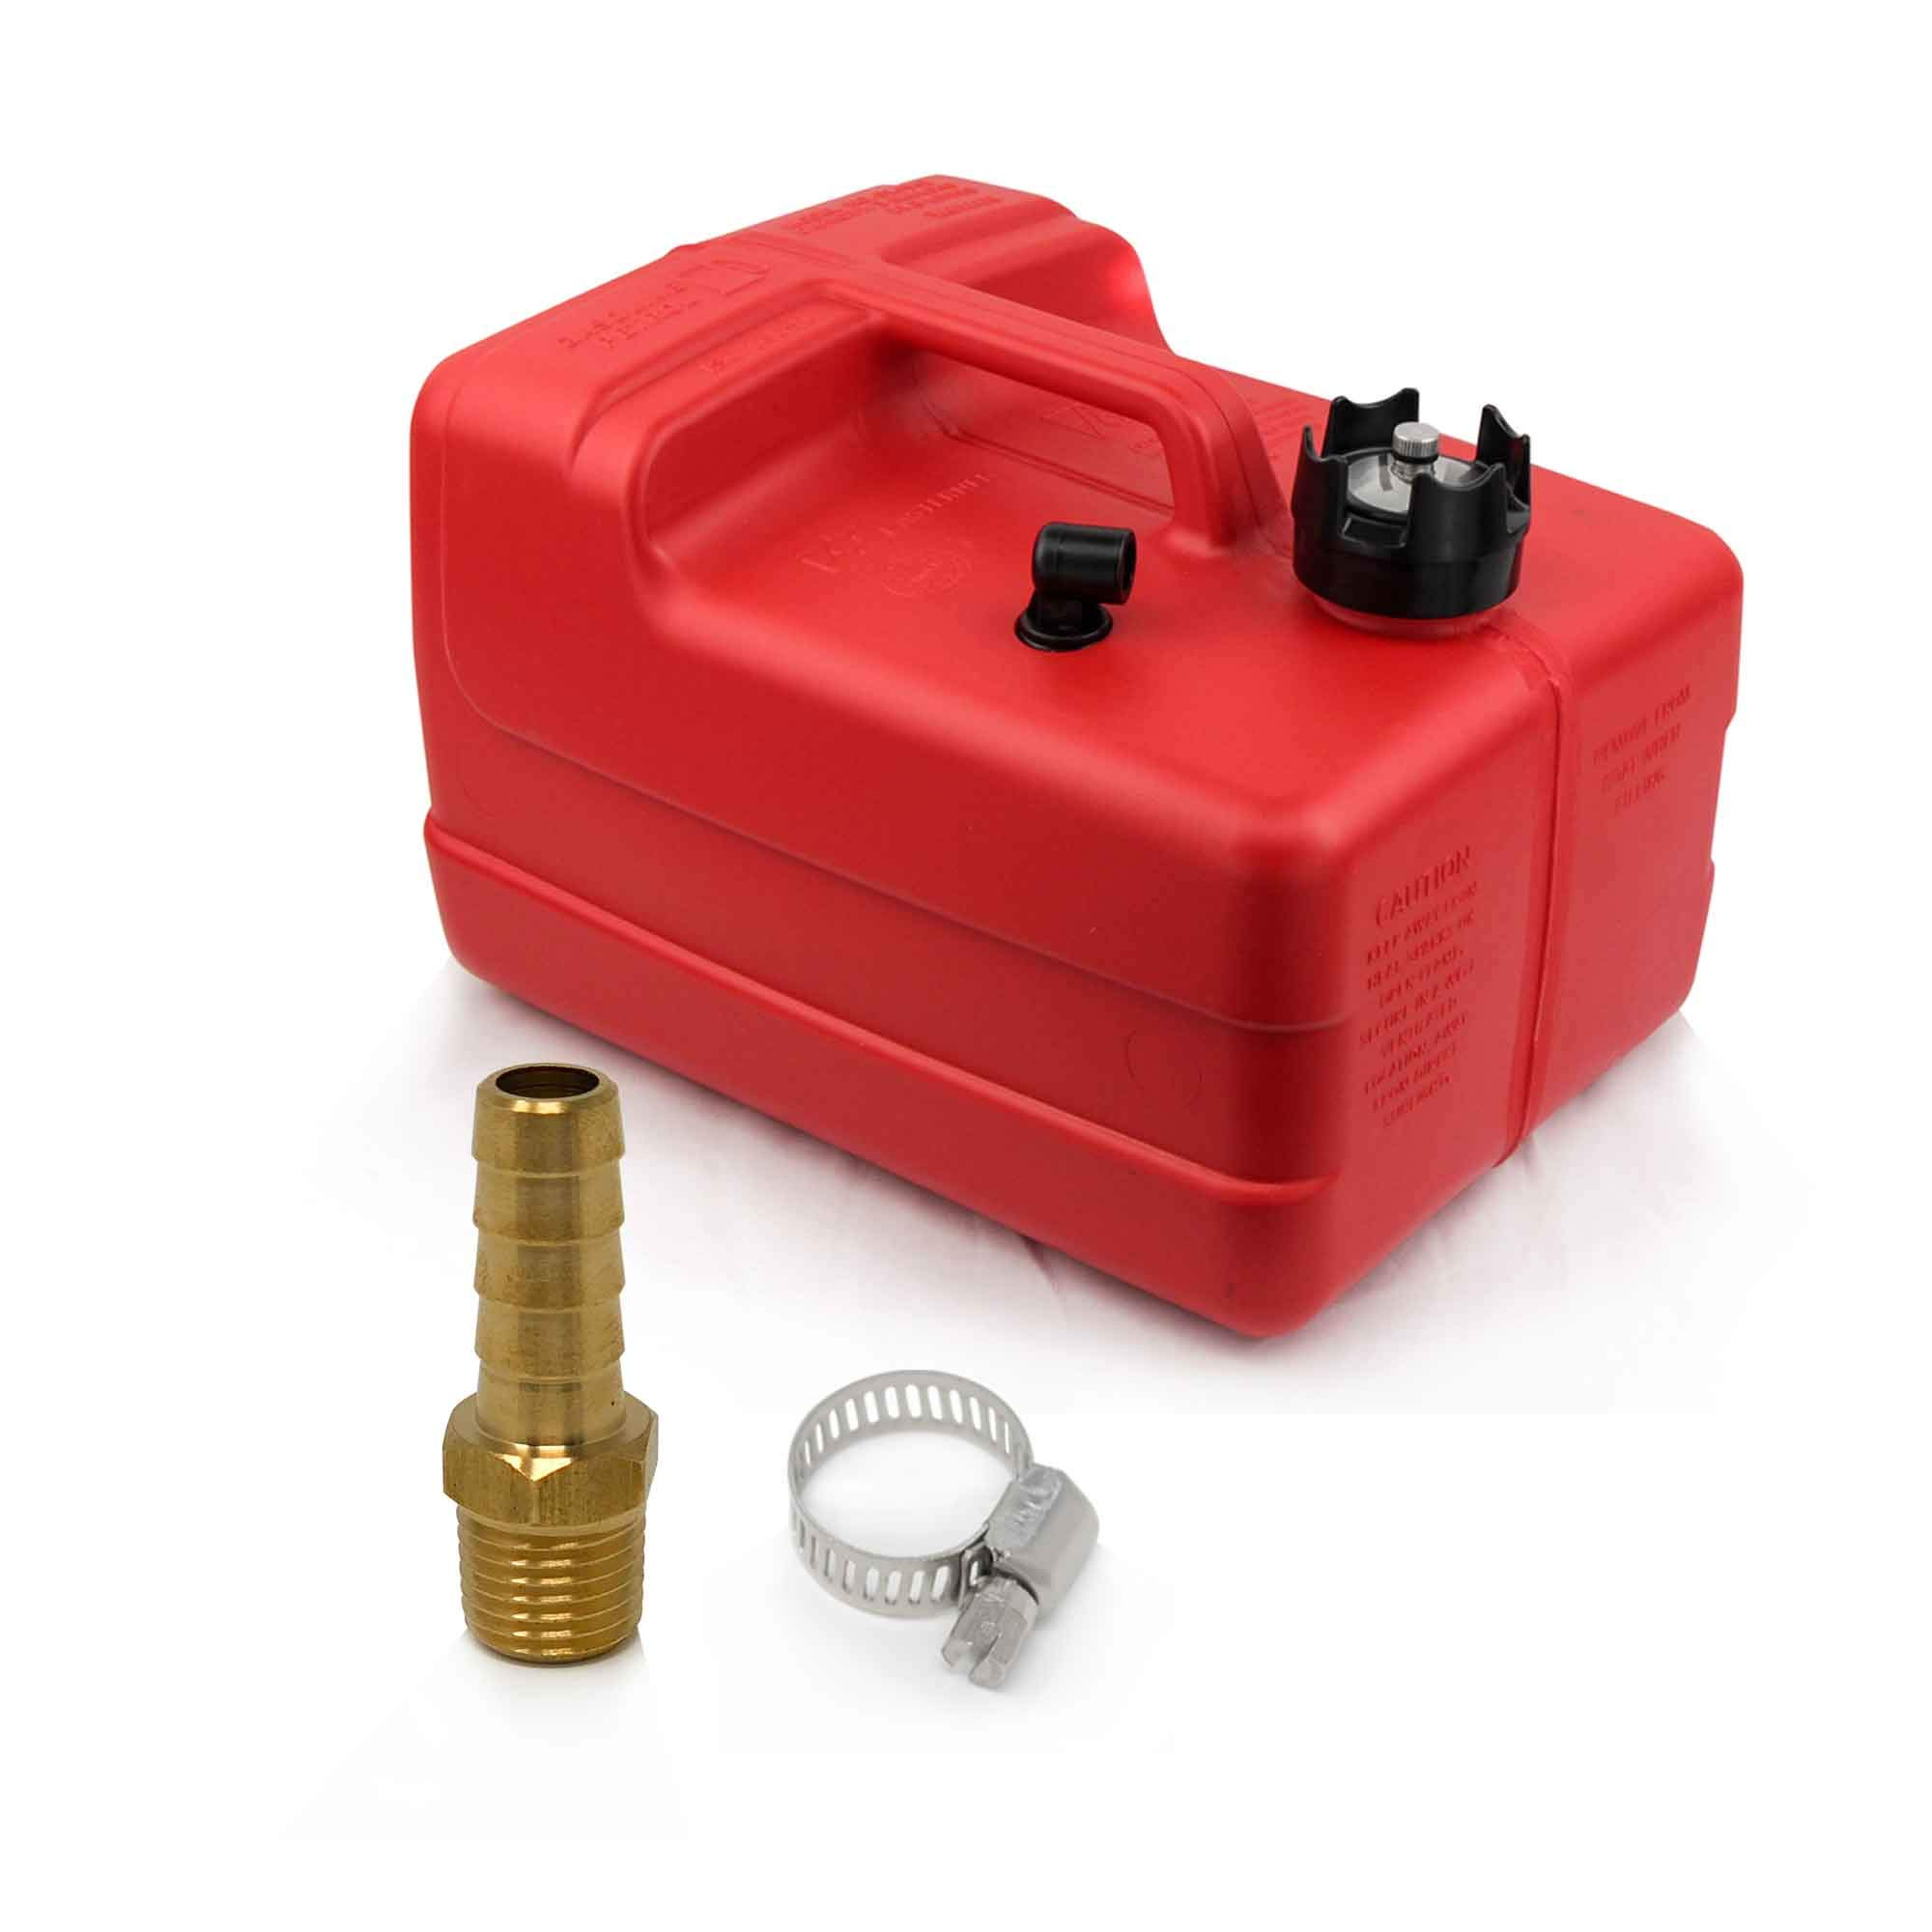 FIVE OCEANS 3 Gallon Fuel Tank/Portable Kit w/Universal Brass Fuel Hose Barb (1/4'' NPT Thread x 3/8'' Hose) FO-4129-C6 by FIVE OCEANS